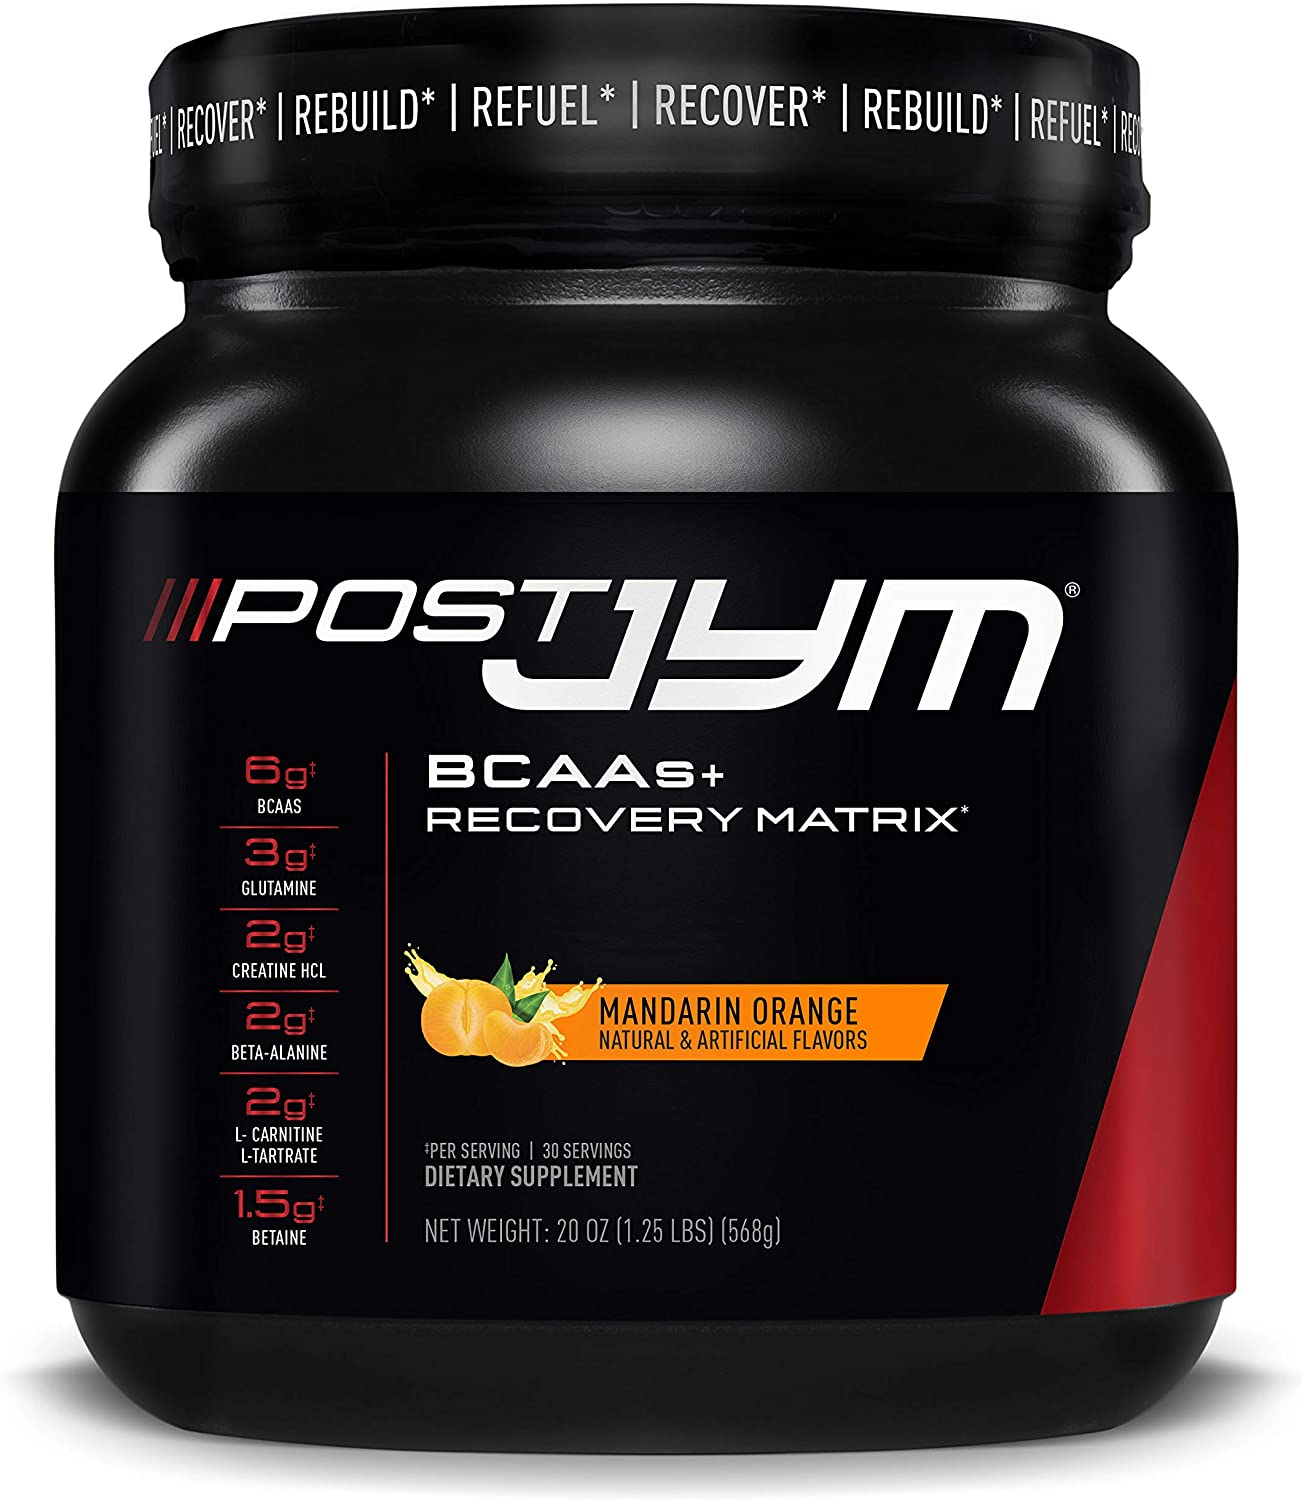 Post JYM Active Matrix - Post-Workout with BCAA's, Glutamine, Creatine HCL, Beta-Alanine, and More   JYM Supplement Science   Mandarin Orange Flavor, 30 Servings